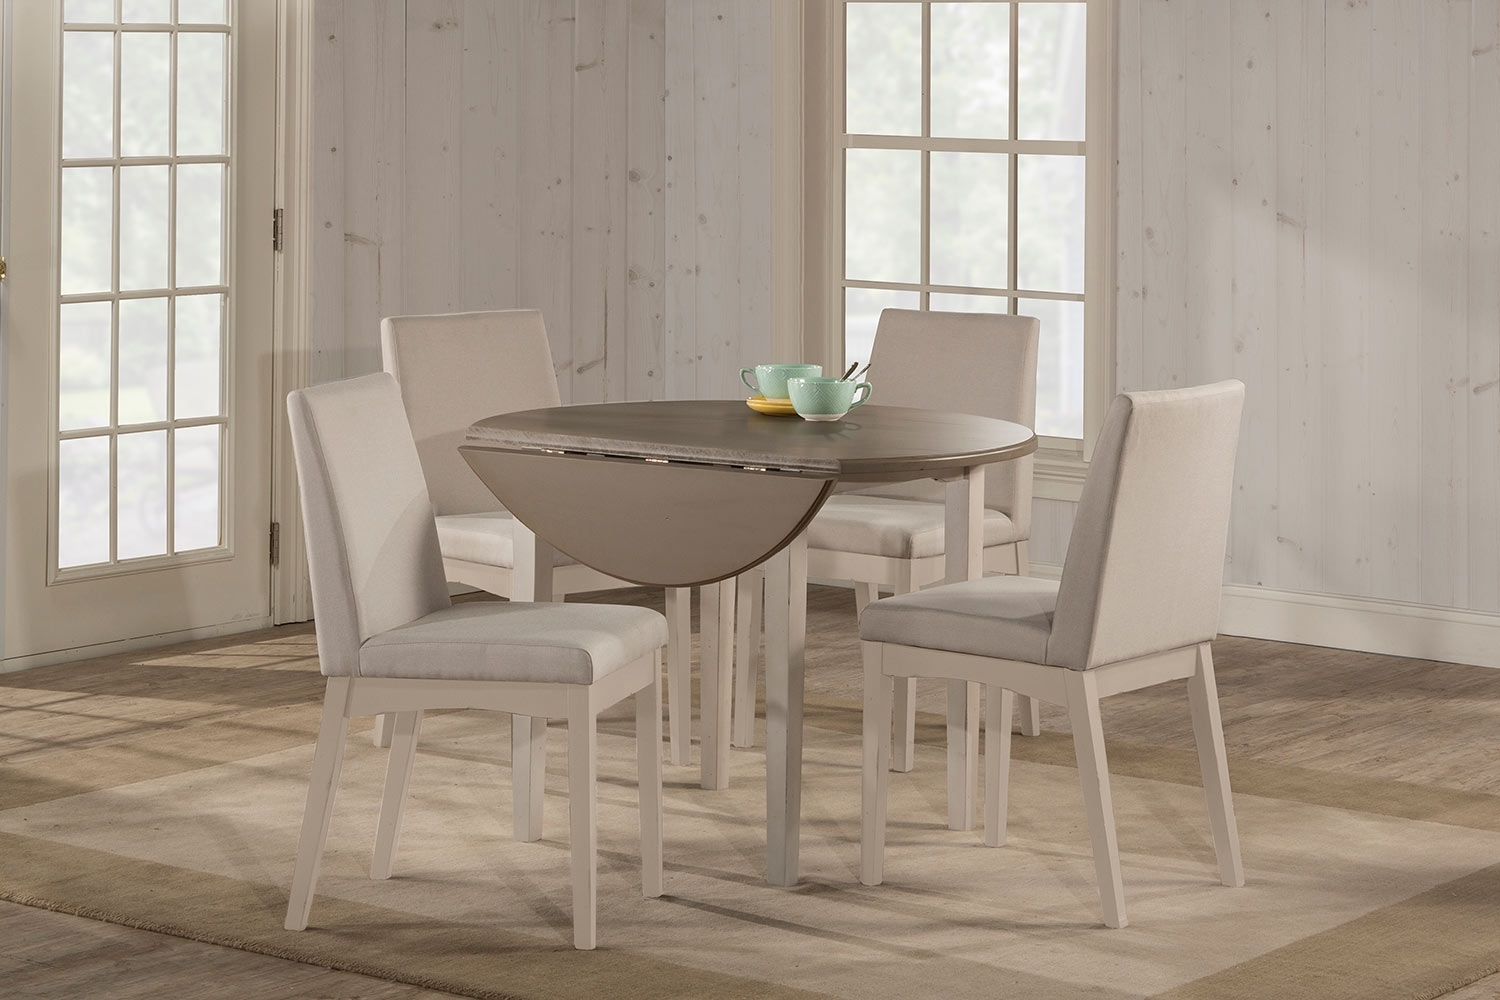 5 Piece Dining Set With Upholstered Chairs – Dining Room Ideas With 2018 Jaxon Grey 5 Piece Round Extension Dining Sets With Wood Chairs (Photo 20 of 20)